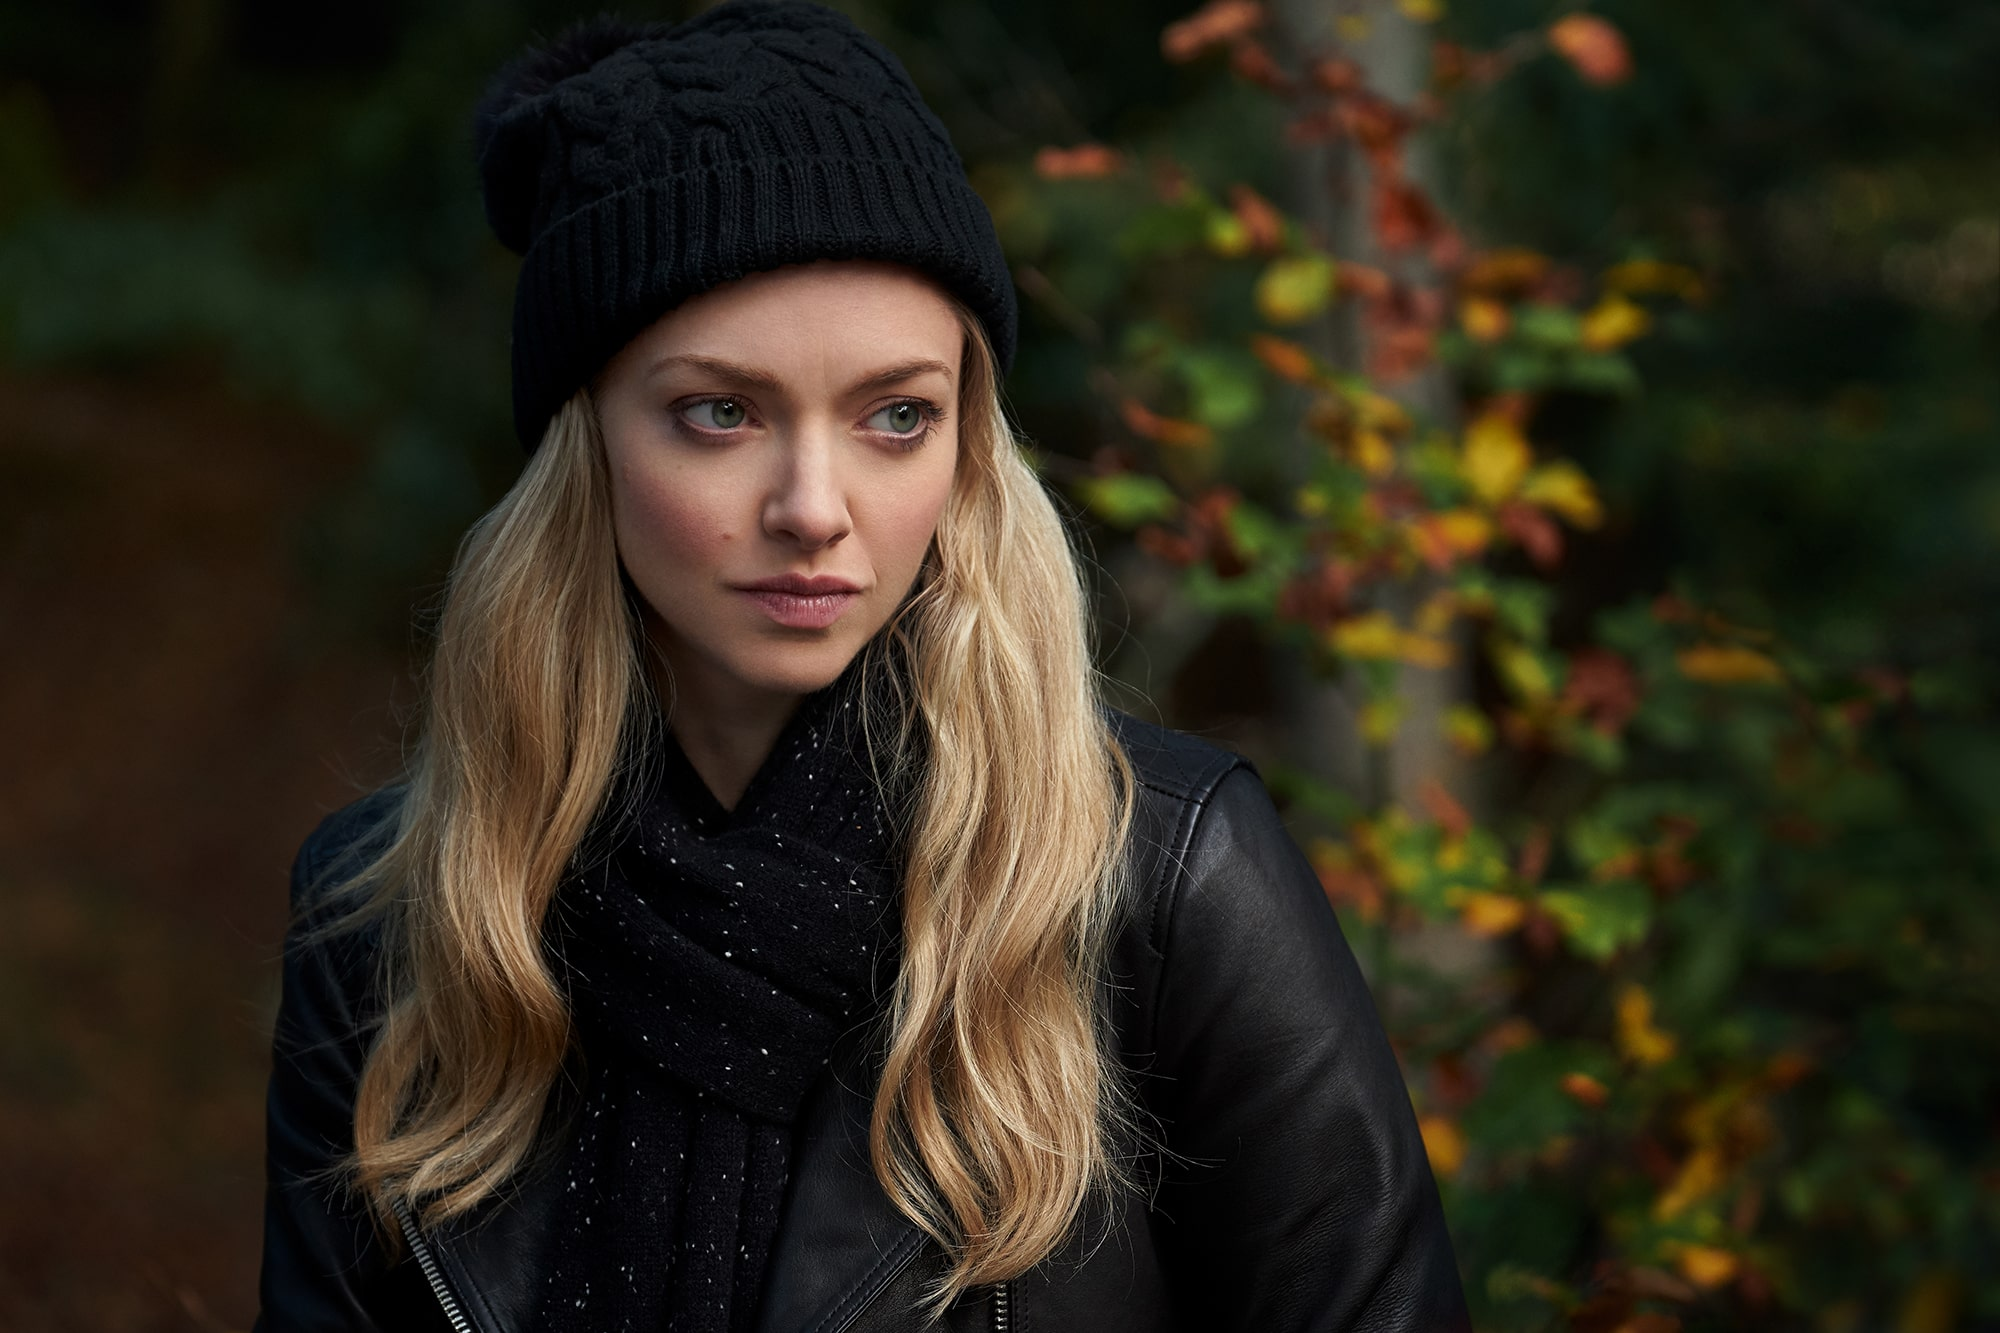 Amanda Seyfried in You Should Have Left (2020 Movie)